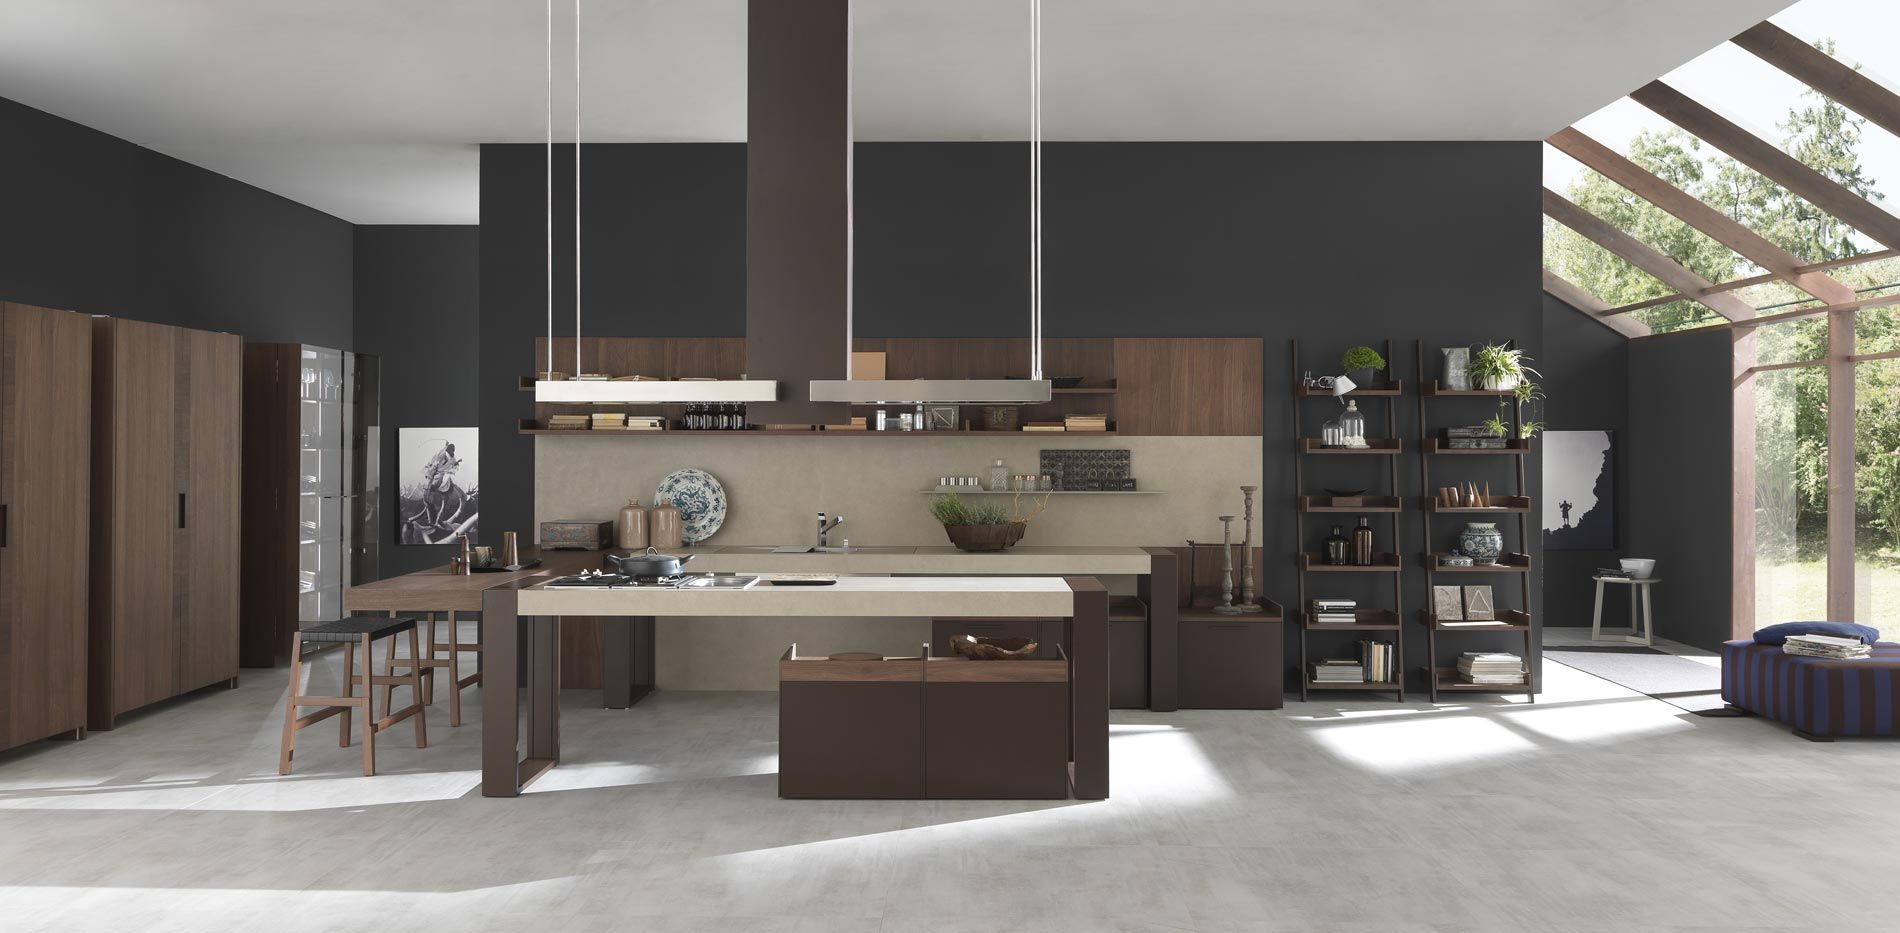 captivating innovative kitchen ideas. Organic Materials And Innovative Design Marries Arts Crafts Influences With Modern. Captivating Kitchen Ideas